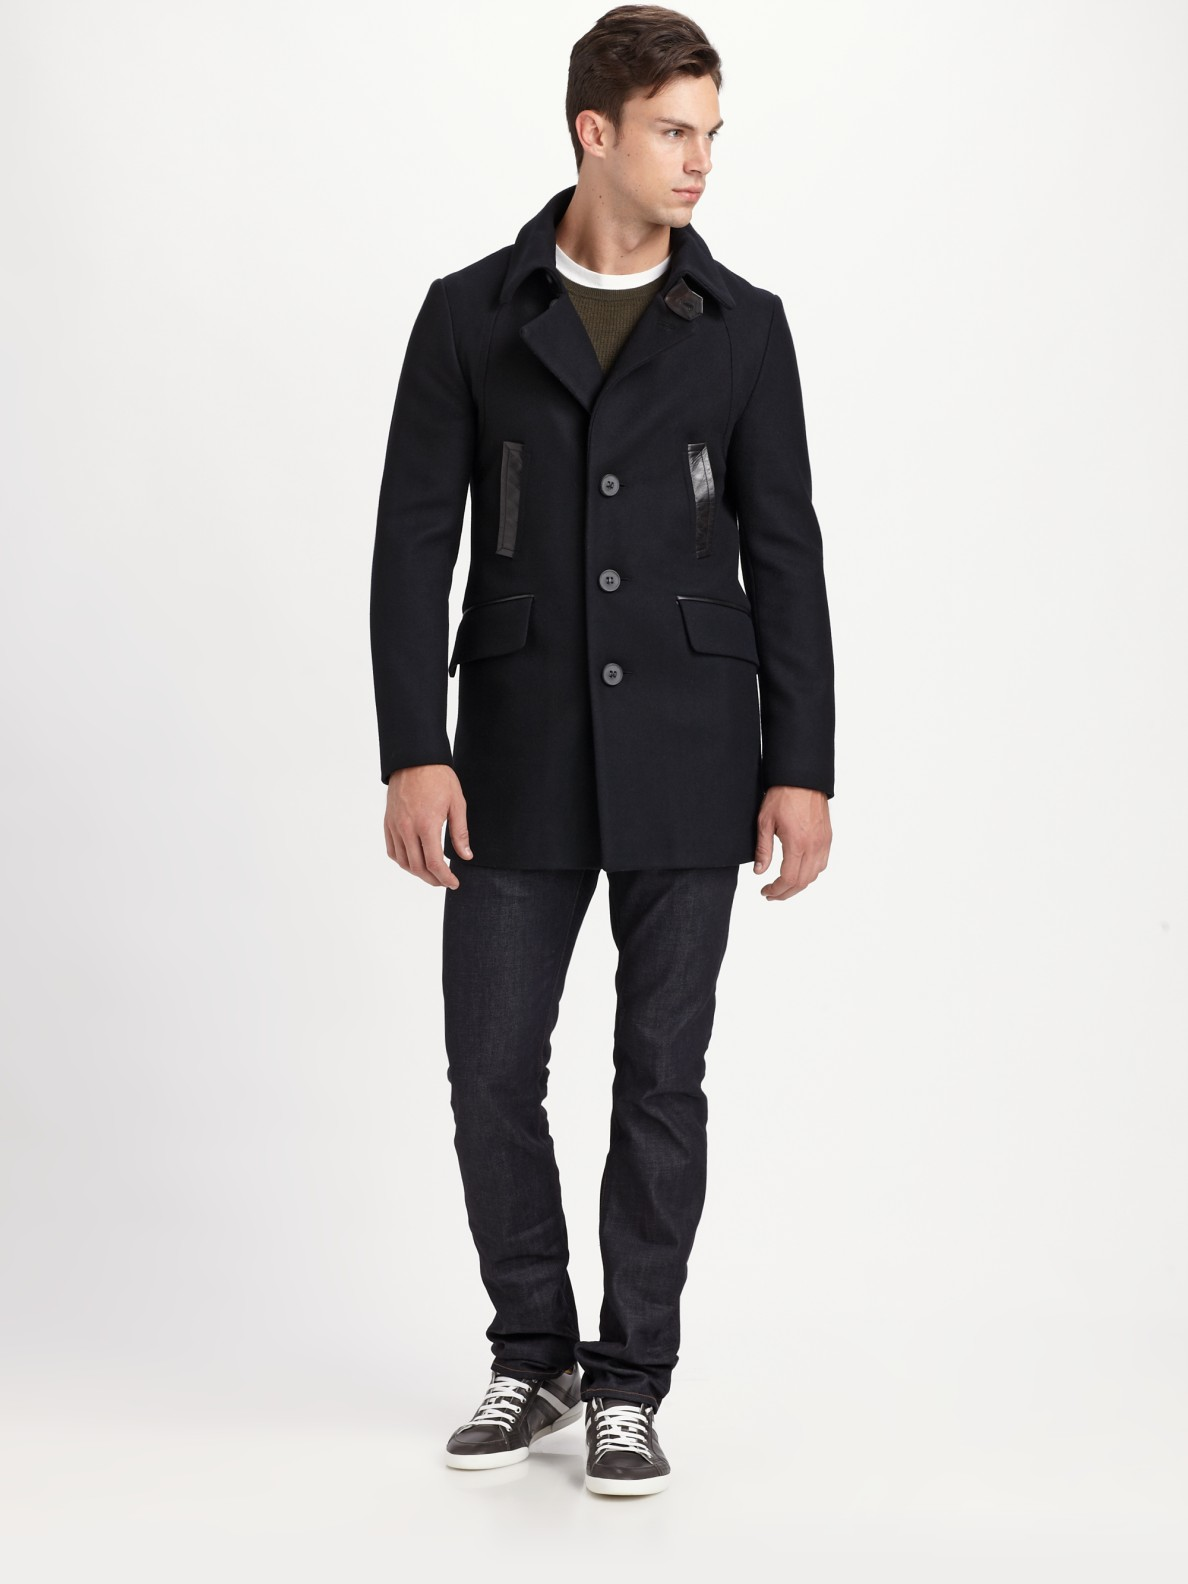 Mackage Clark Peacoat in Black for Men | Lyst